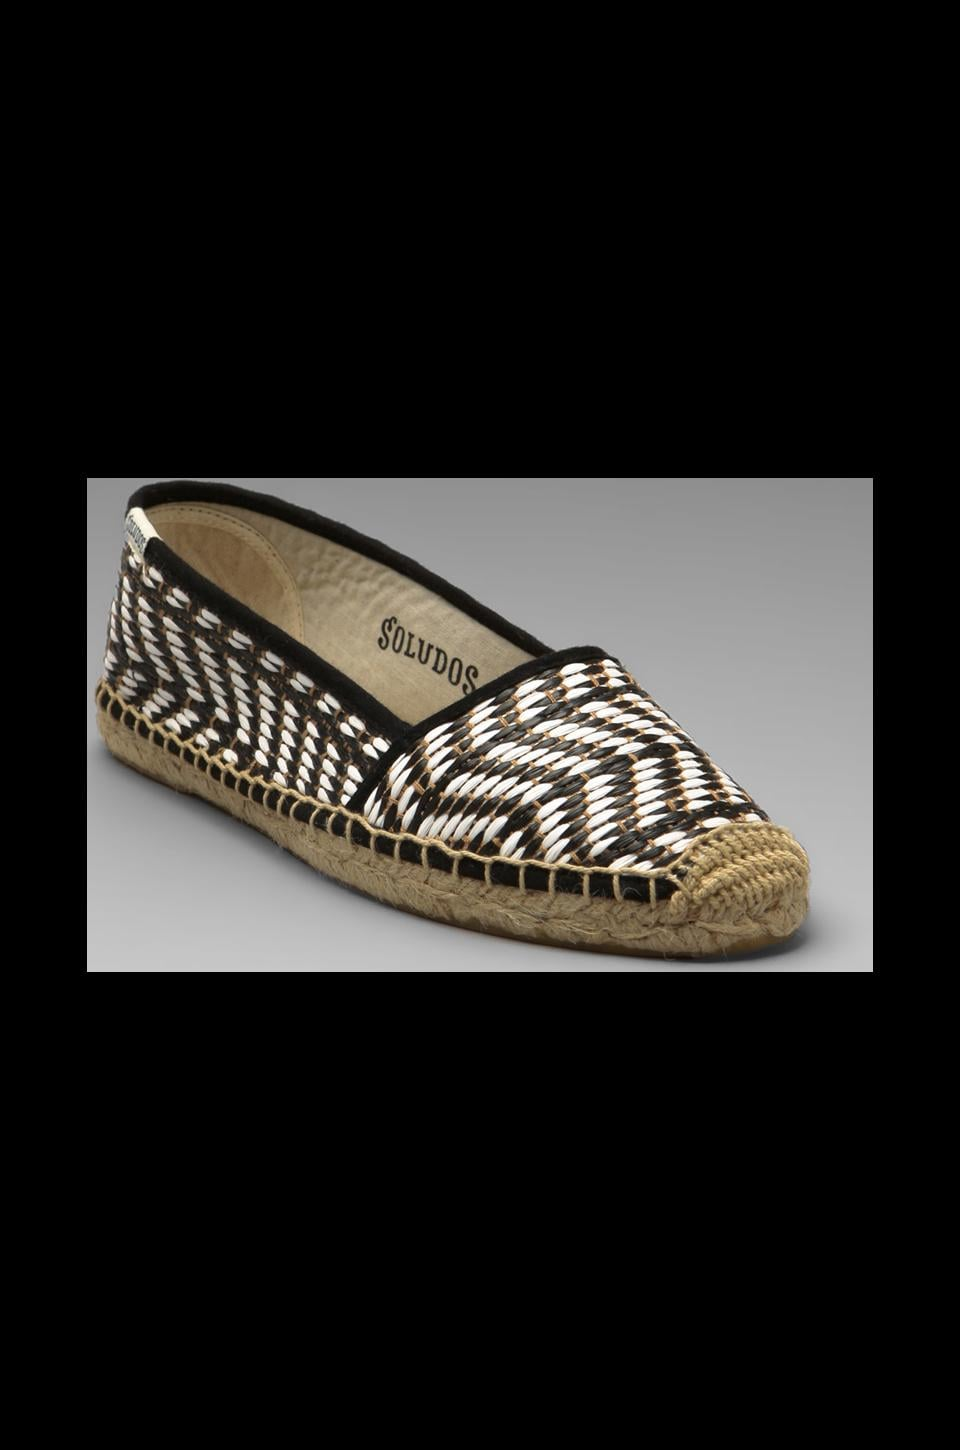 Soludos Raffia Low Cut in Black White